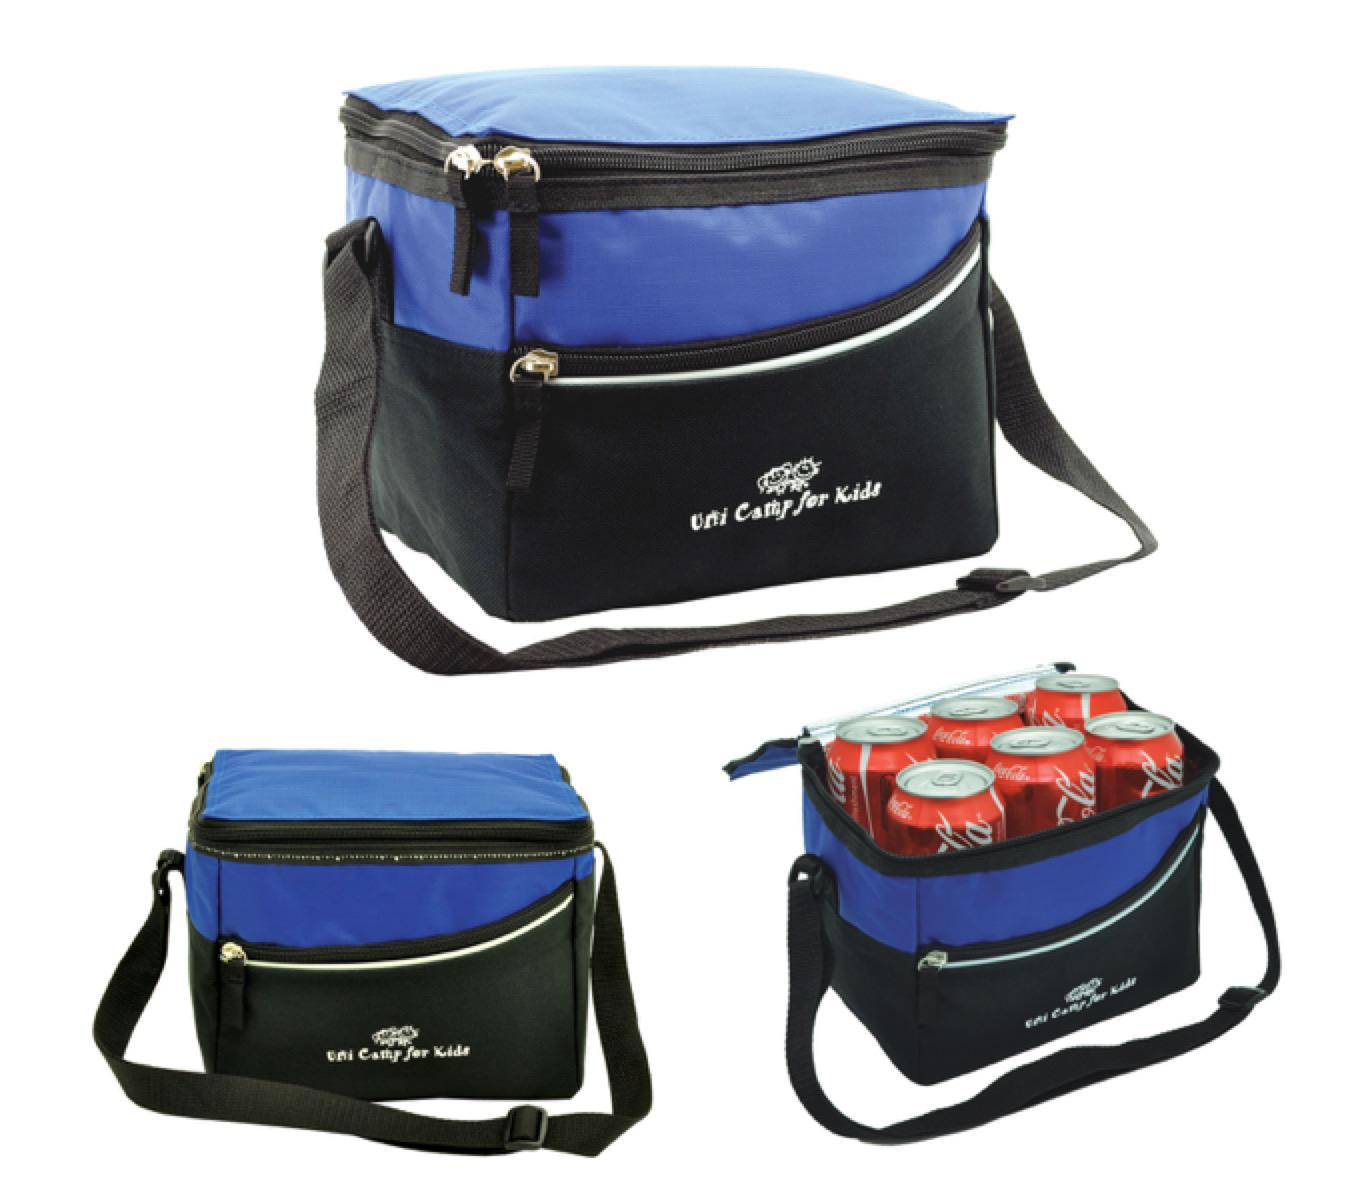 Amigo cooler bag, From 6.61